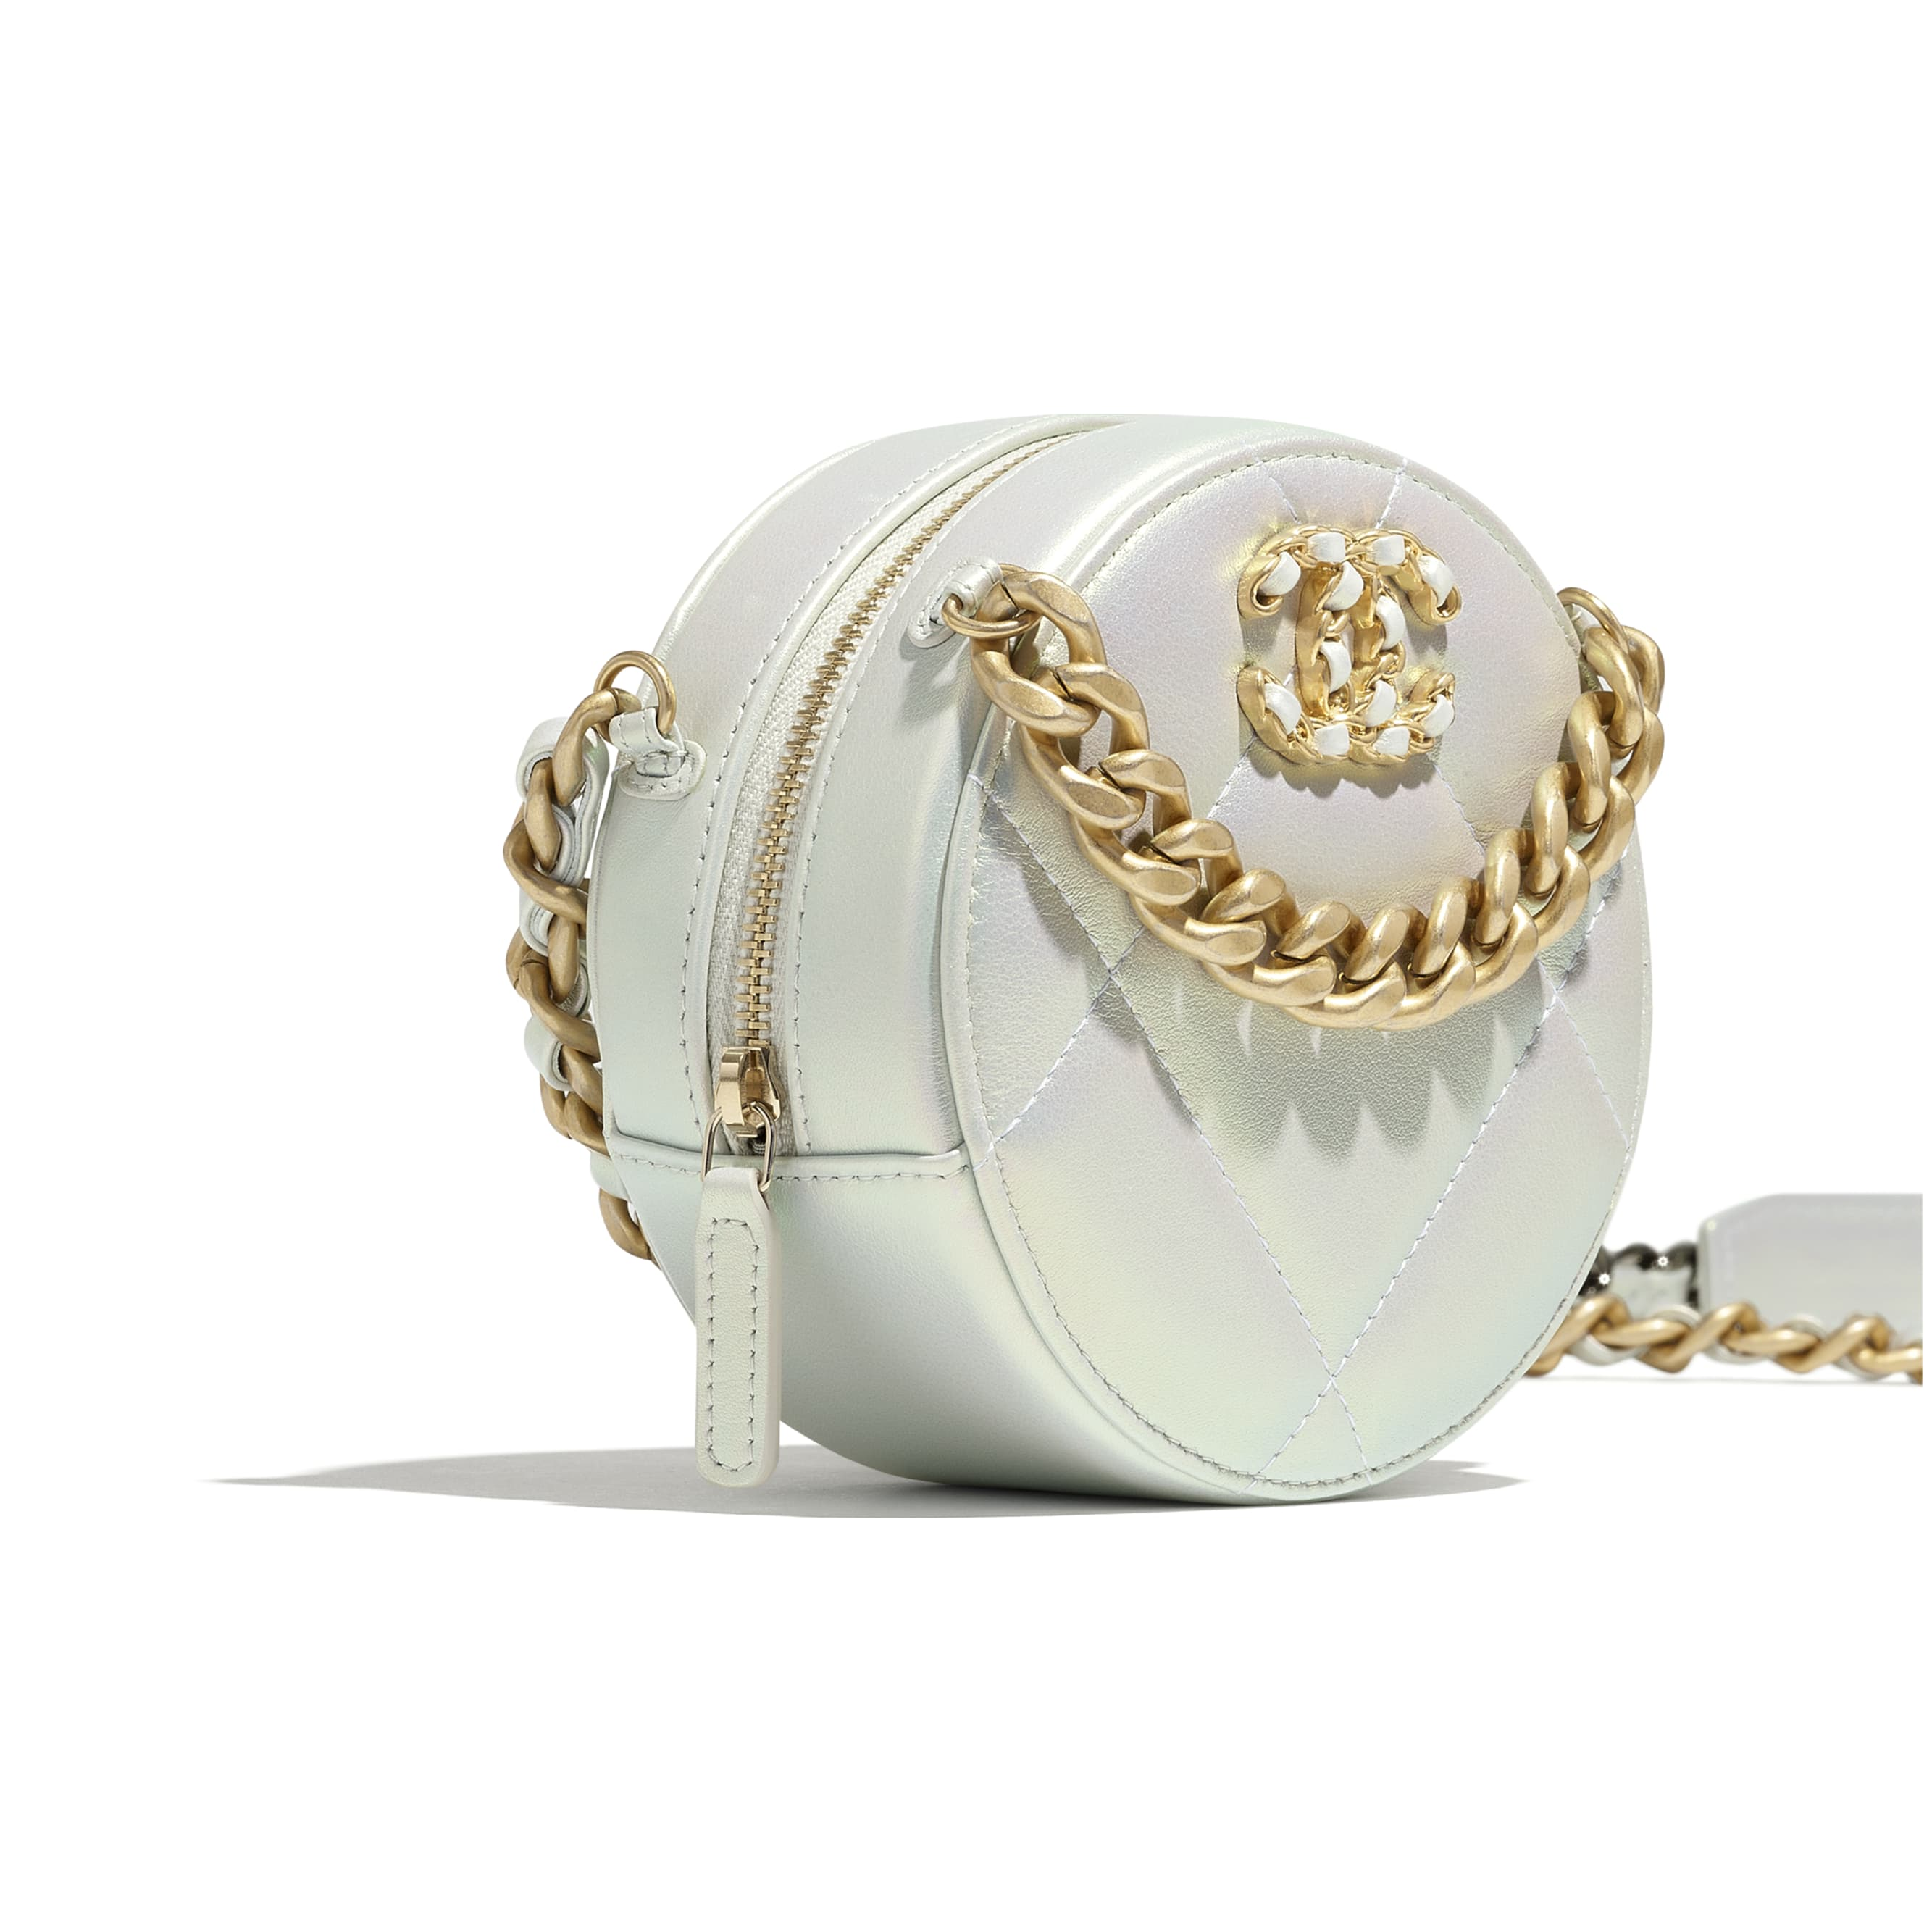 CHANEL 19 Clutch with Chain - White - Iridescent Calfskin, Gold-Tone, Silver-Tone & Ruthenium-Finish Metal - CHANEL - Extra view - see standard sized version